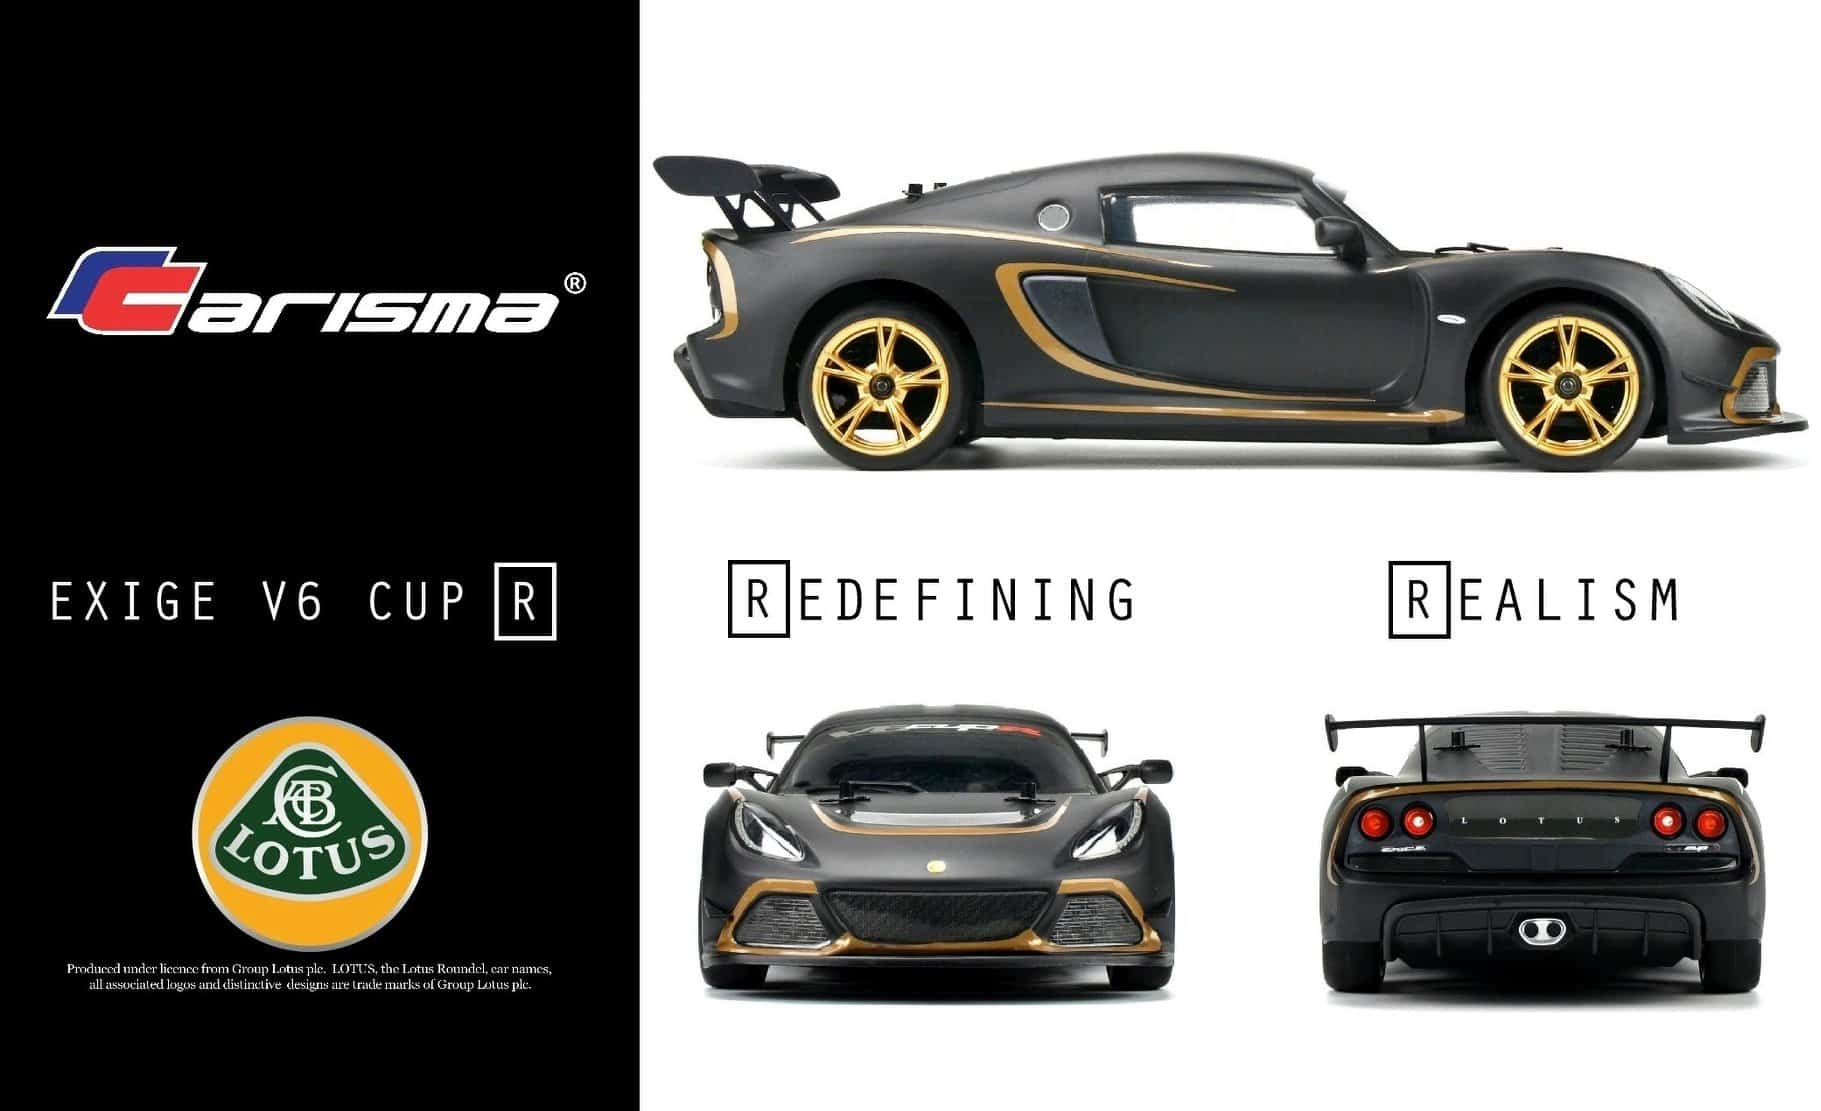 Carisma Reveals Specs and Pricing for the Lotus Exige V6 Cup R